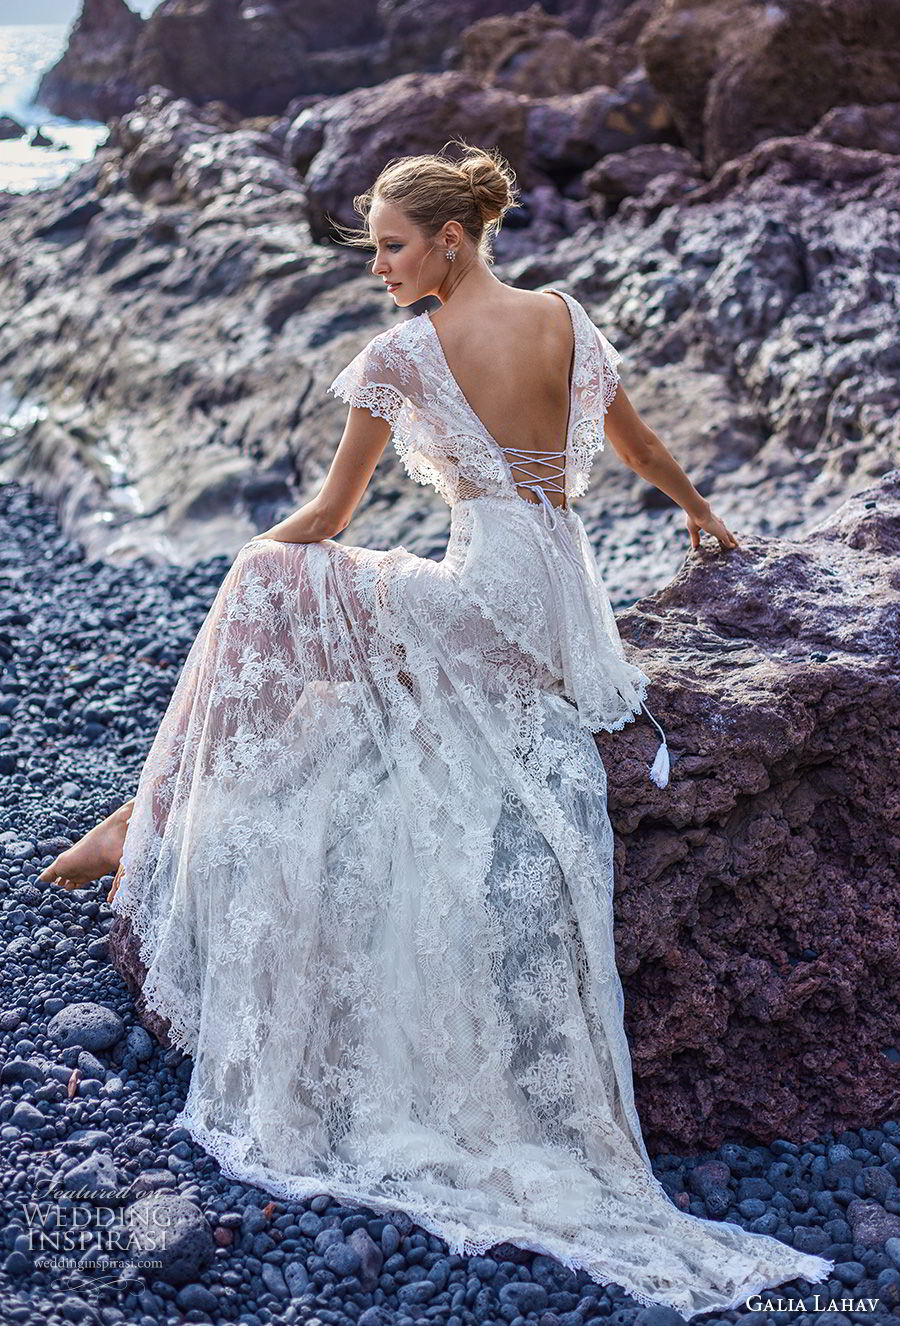 galia lahav gala 2018 bridal butterfly sleeves deep v neck full embellishment bohemian lace a line wedding dress with pockets open back short train (8) bv